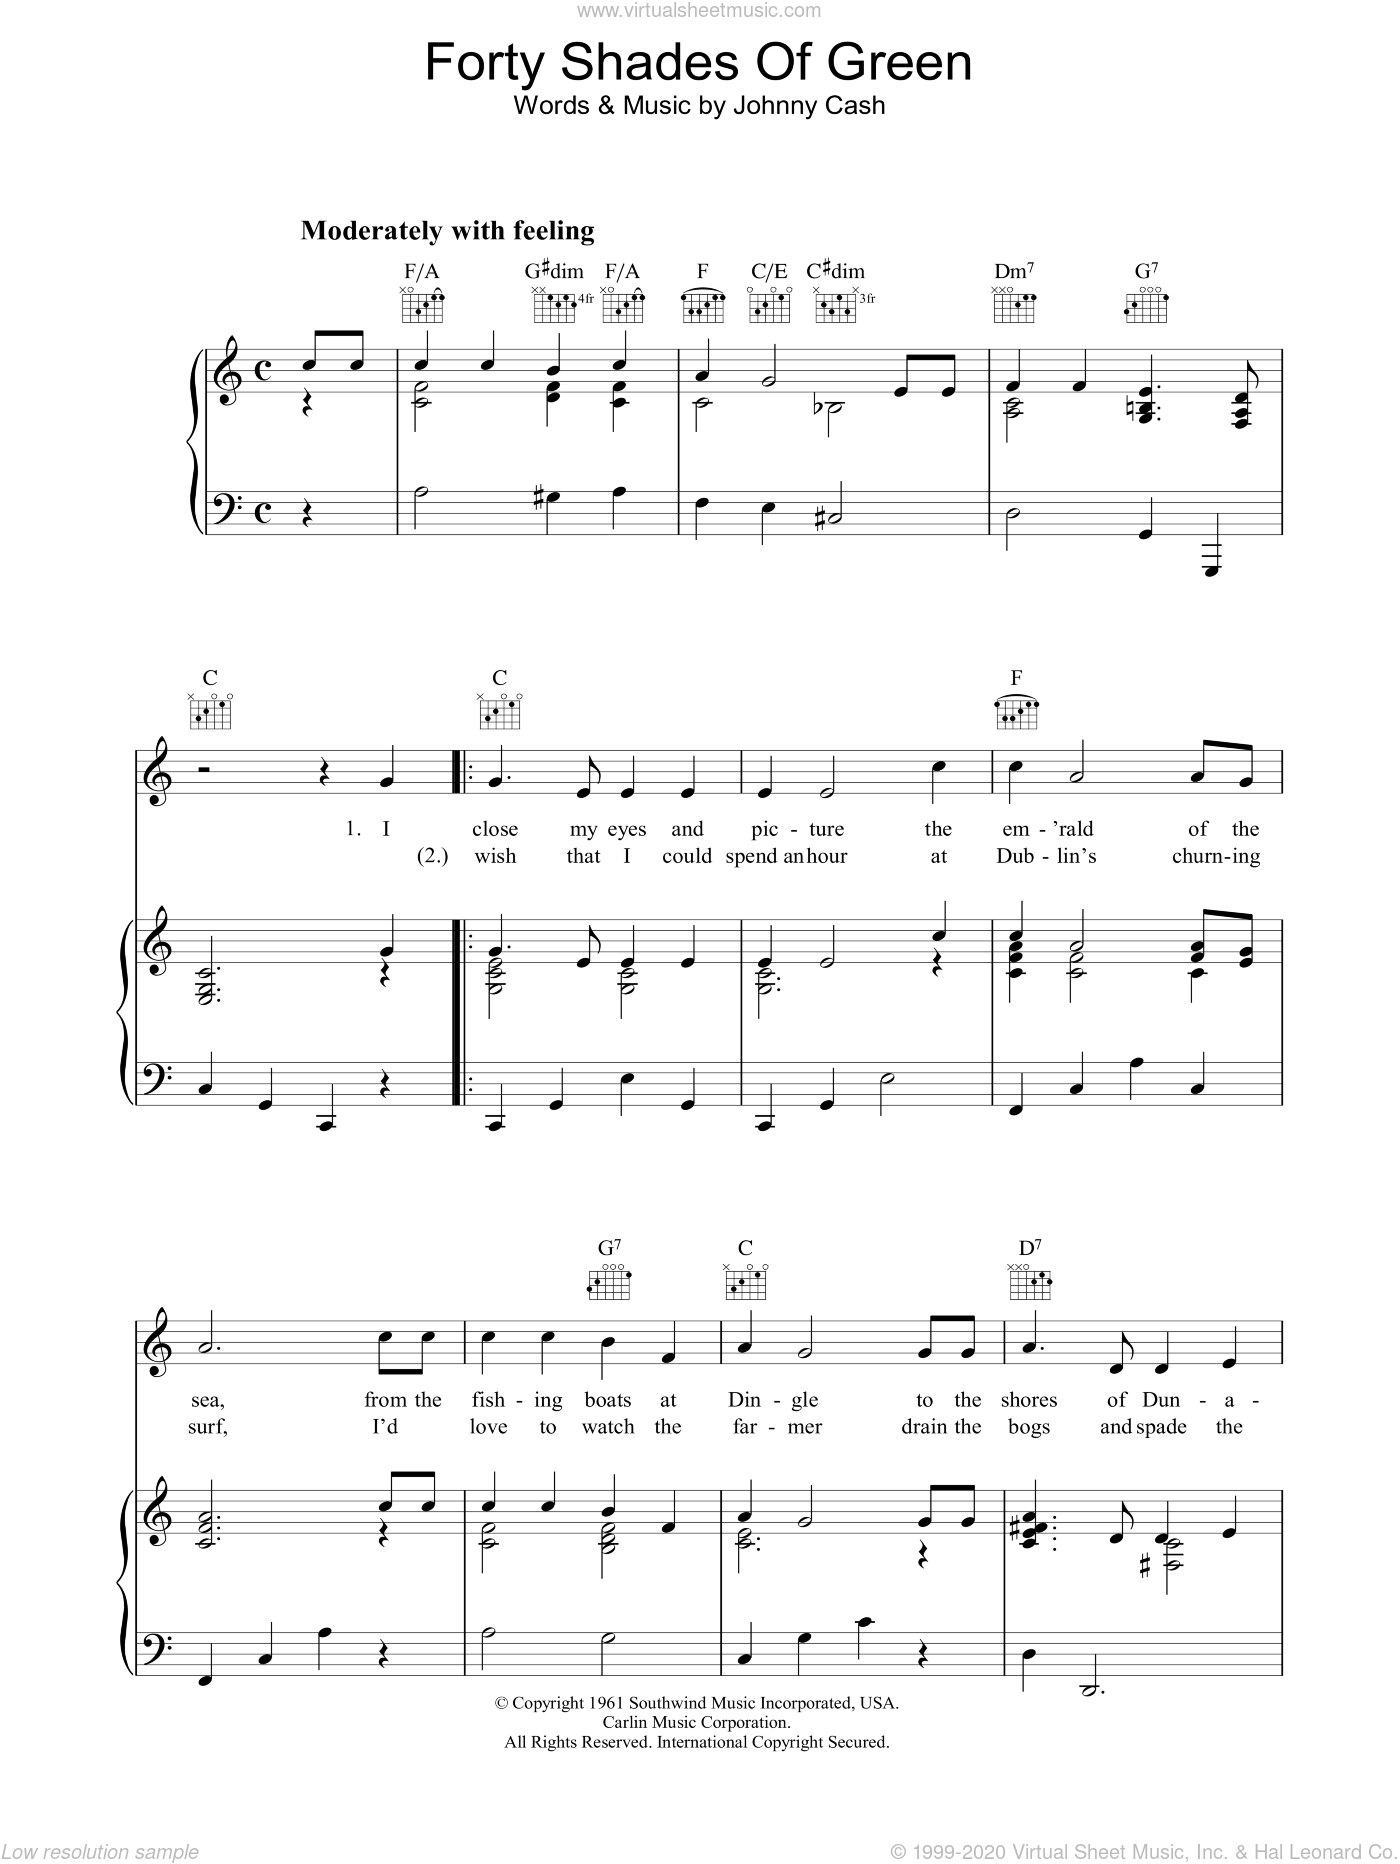 Forty Shades Of Green sheet music for voice, piano or guitar by Johnny Cash, intermediate voice, piano or guitar. Score Image Preview.